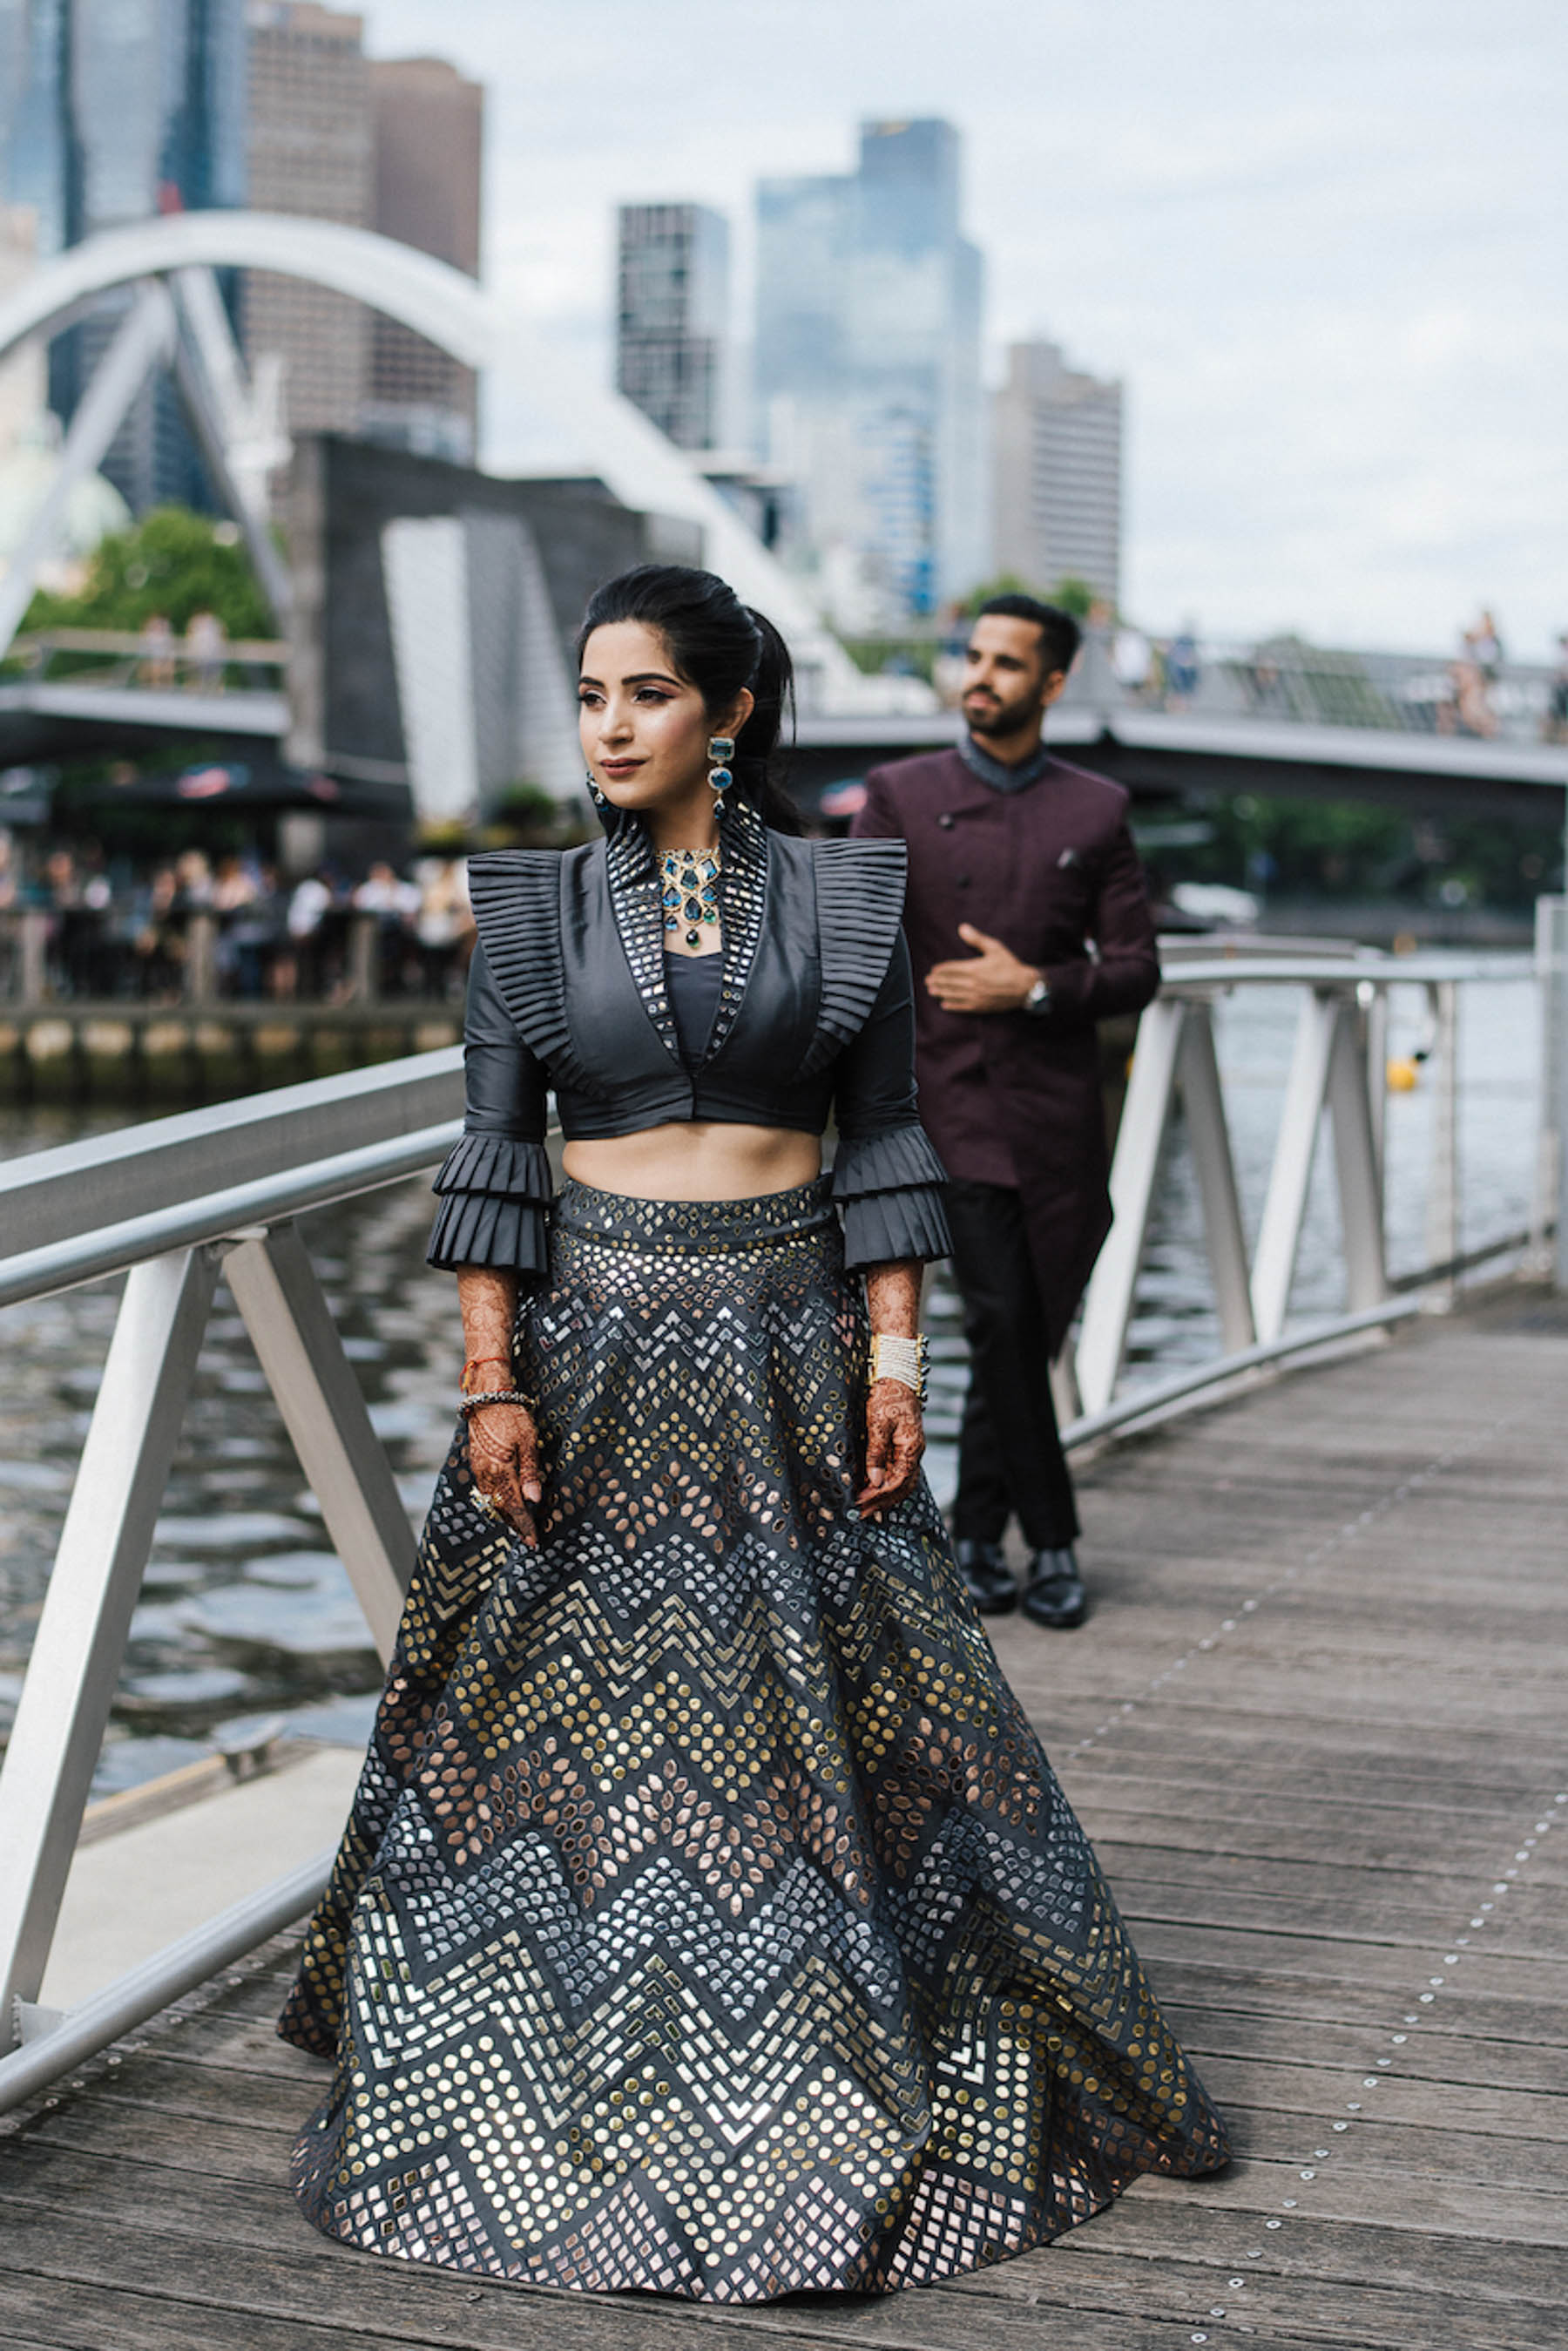 Melbourne bride, Nomeeta stated that the moment she walked into the Abu Jani Sandeep Khosla store, she felt at home. All of their ensembles really resonated with her and she left with a beautiful grey lehenga which she wore for her Sangeet party at Crown Melbourne.